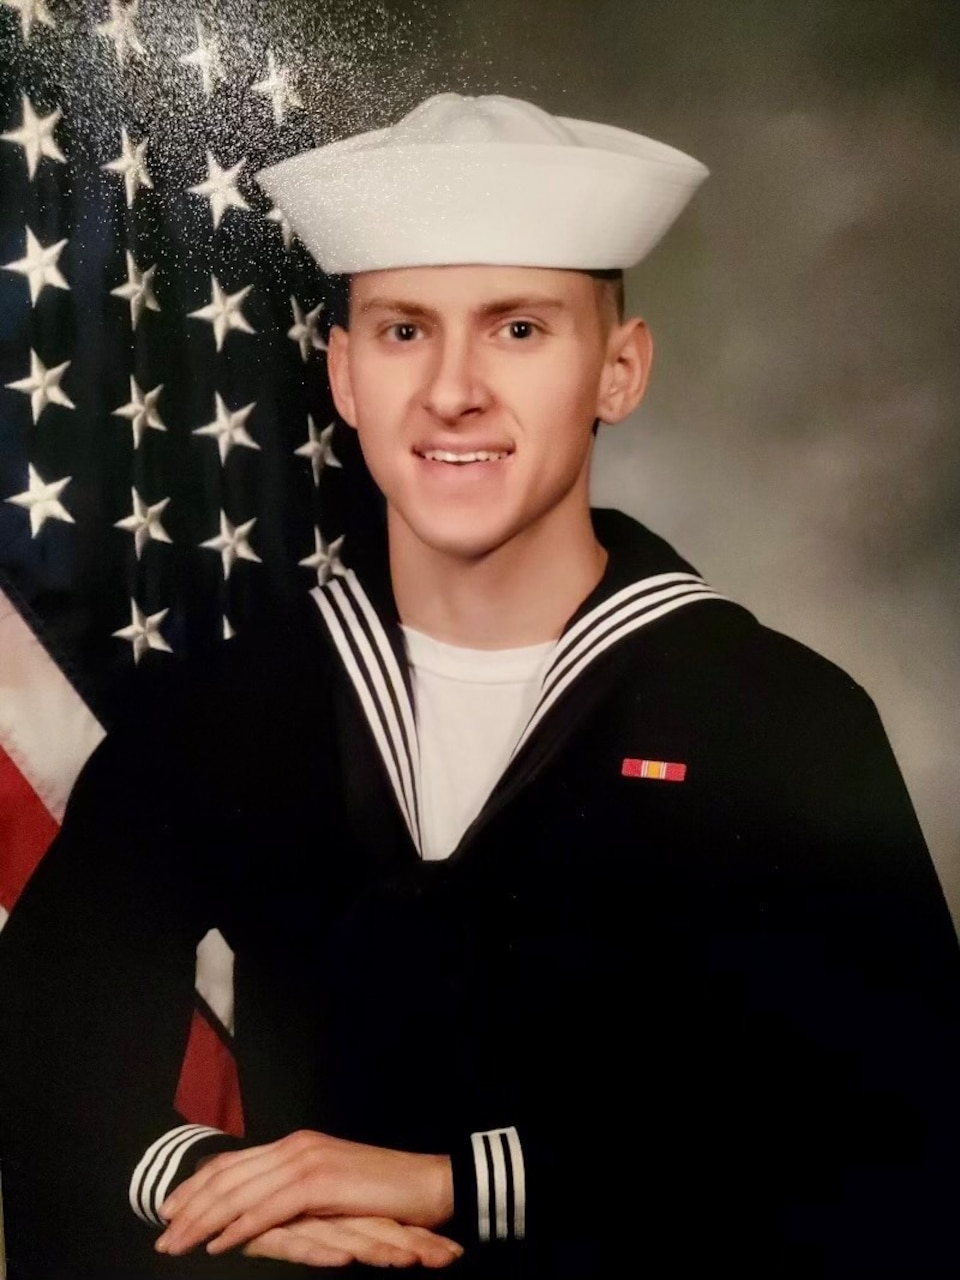 FILE PHOTO of Hospital Corpsman 3rd Class Bailey J. Tucker, 21, from St. Louis, Missouri. Tucker was one of five Sailors killed when an MH-60S Seahawk helicopter, assigned to Helicopter Sea Combat Squadron (HSC) 8, crashed approximately 60 nautical miles off the coast of San Diego, Aug. 31.